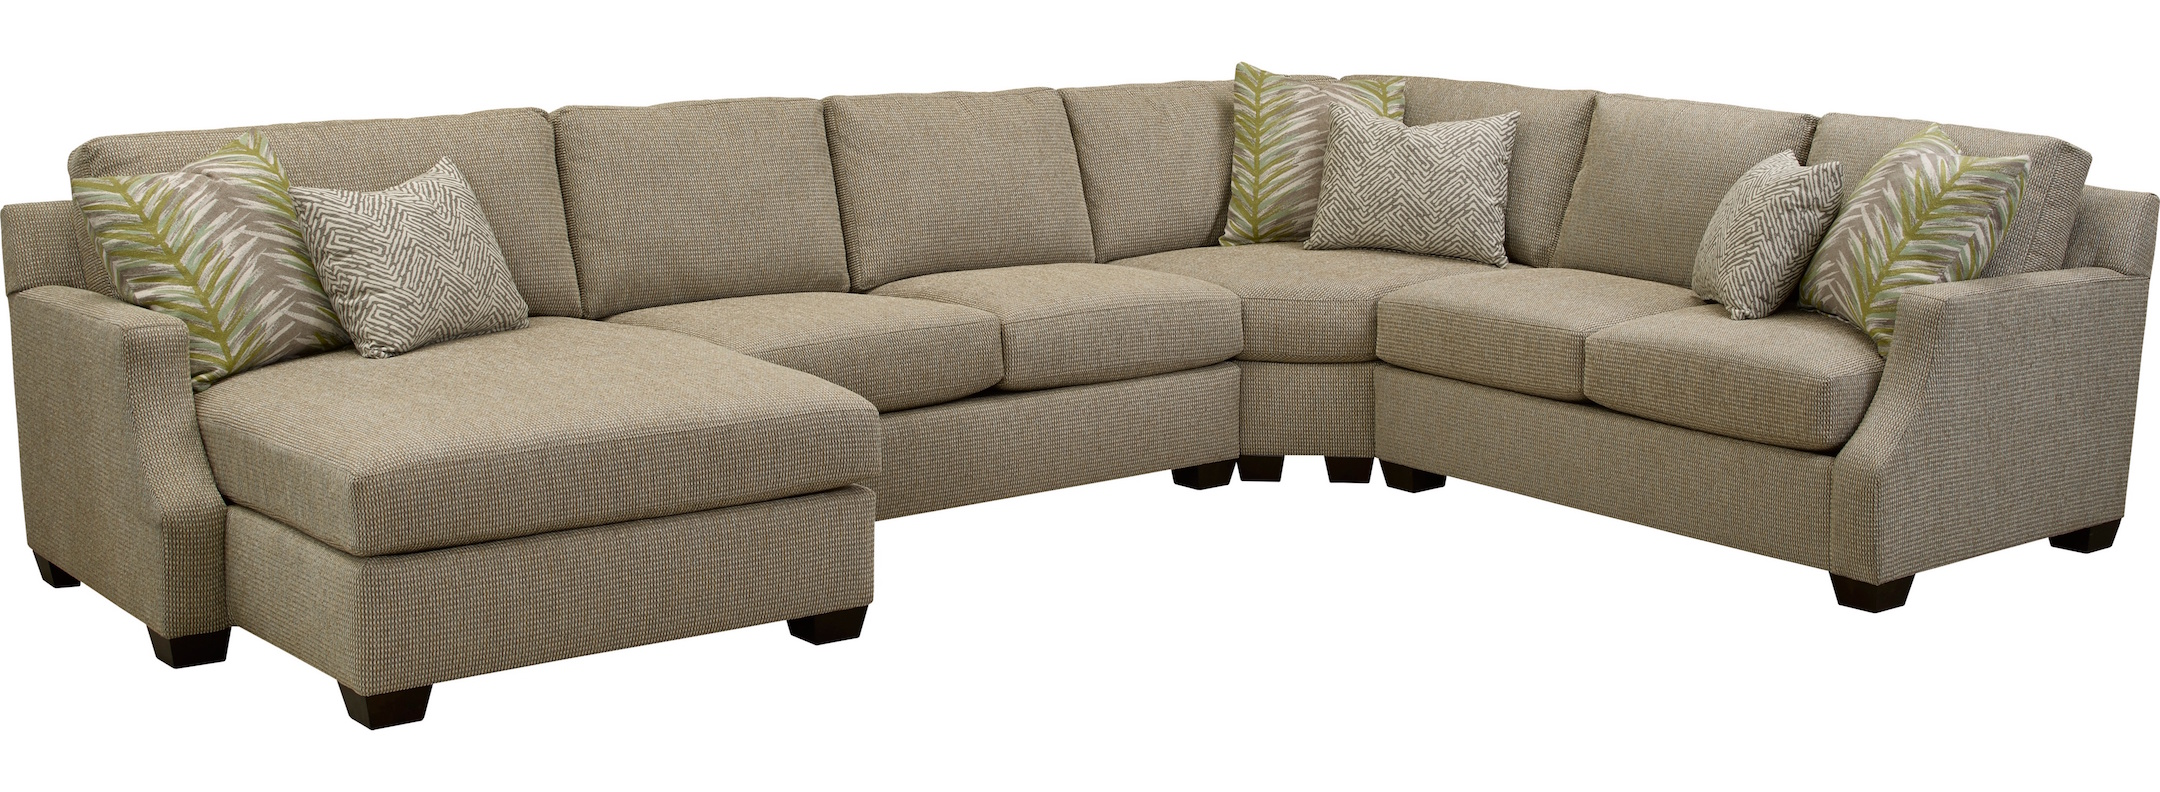 Astounding Chambers Large Sectional Sofa Sofas And Sectionals Pdpeps Interior Chair Design Pdpepsorg